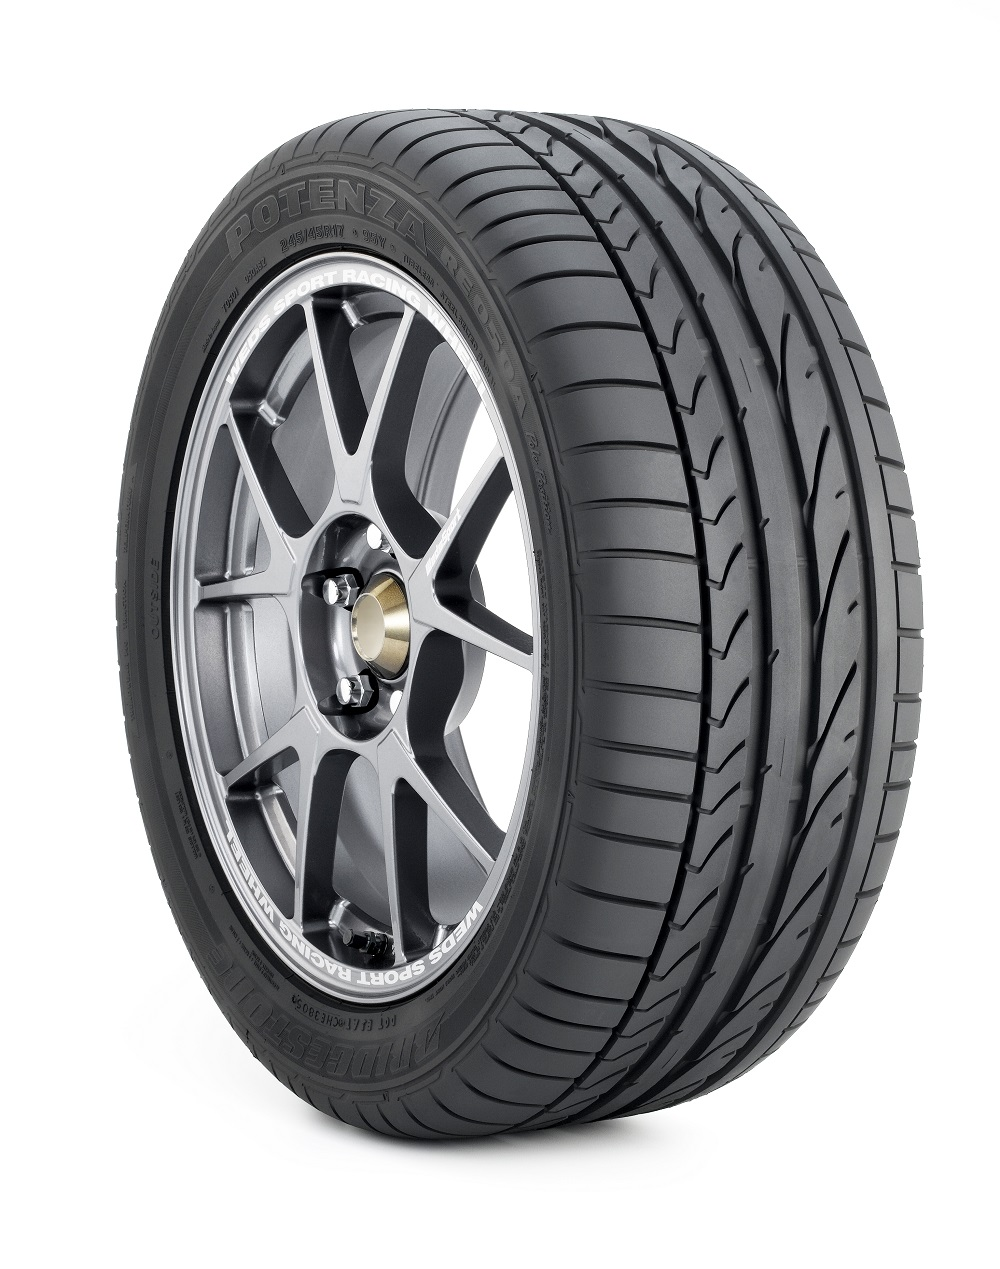 Product Image 1 of 1. Potenza RE050A Pole Position RFT